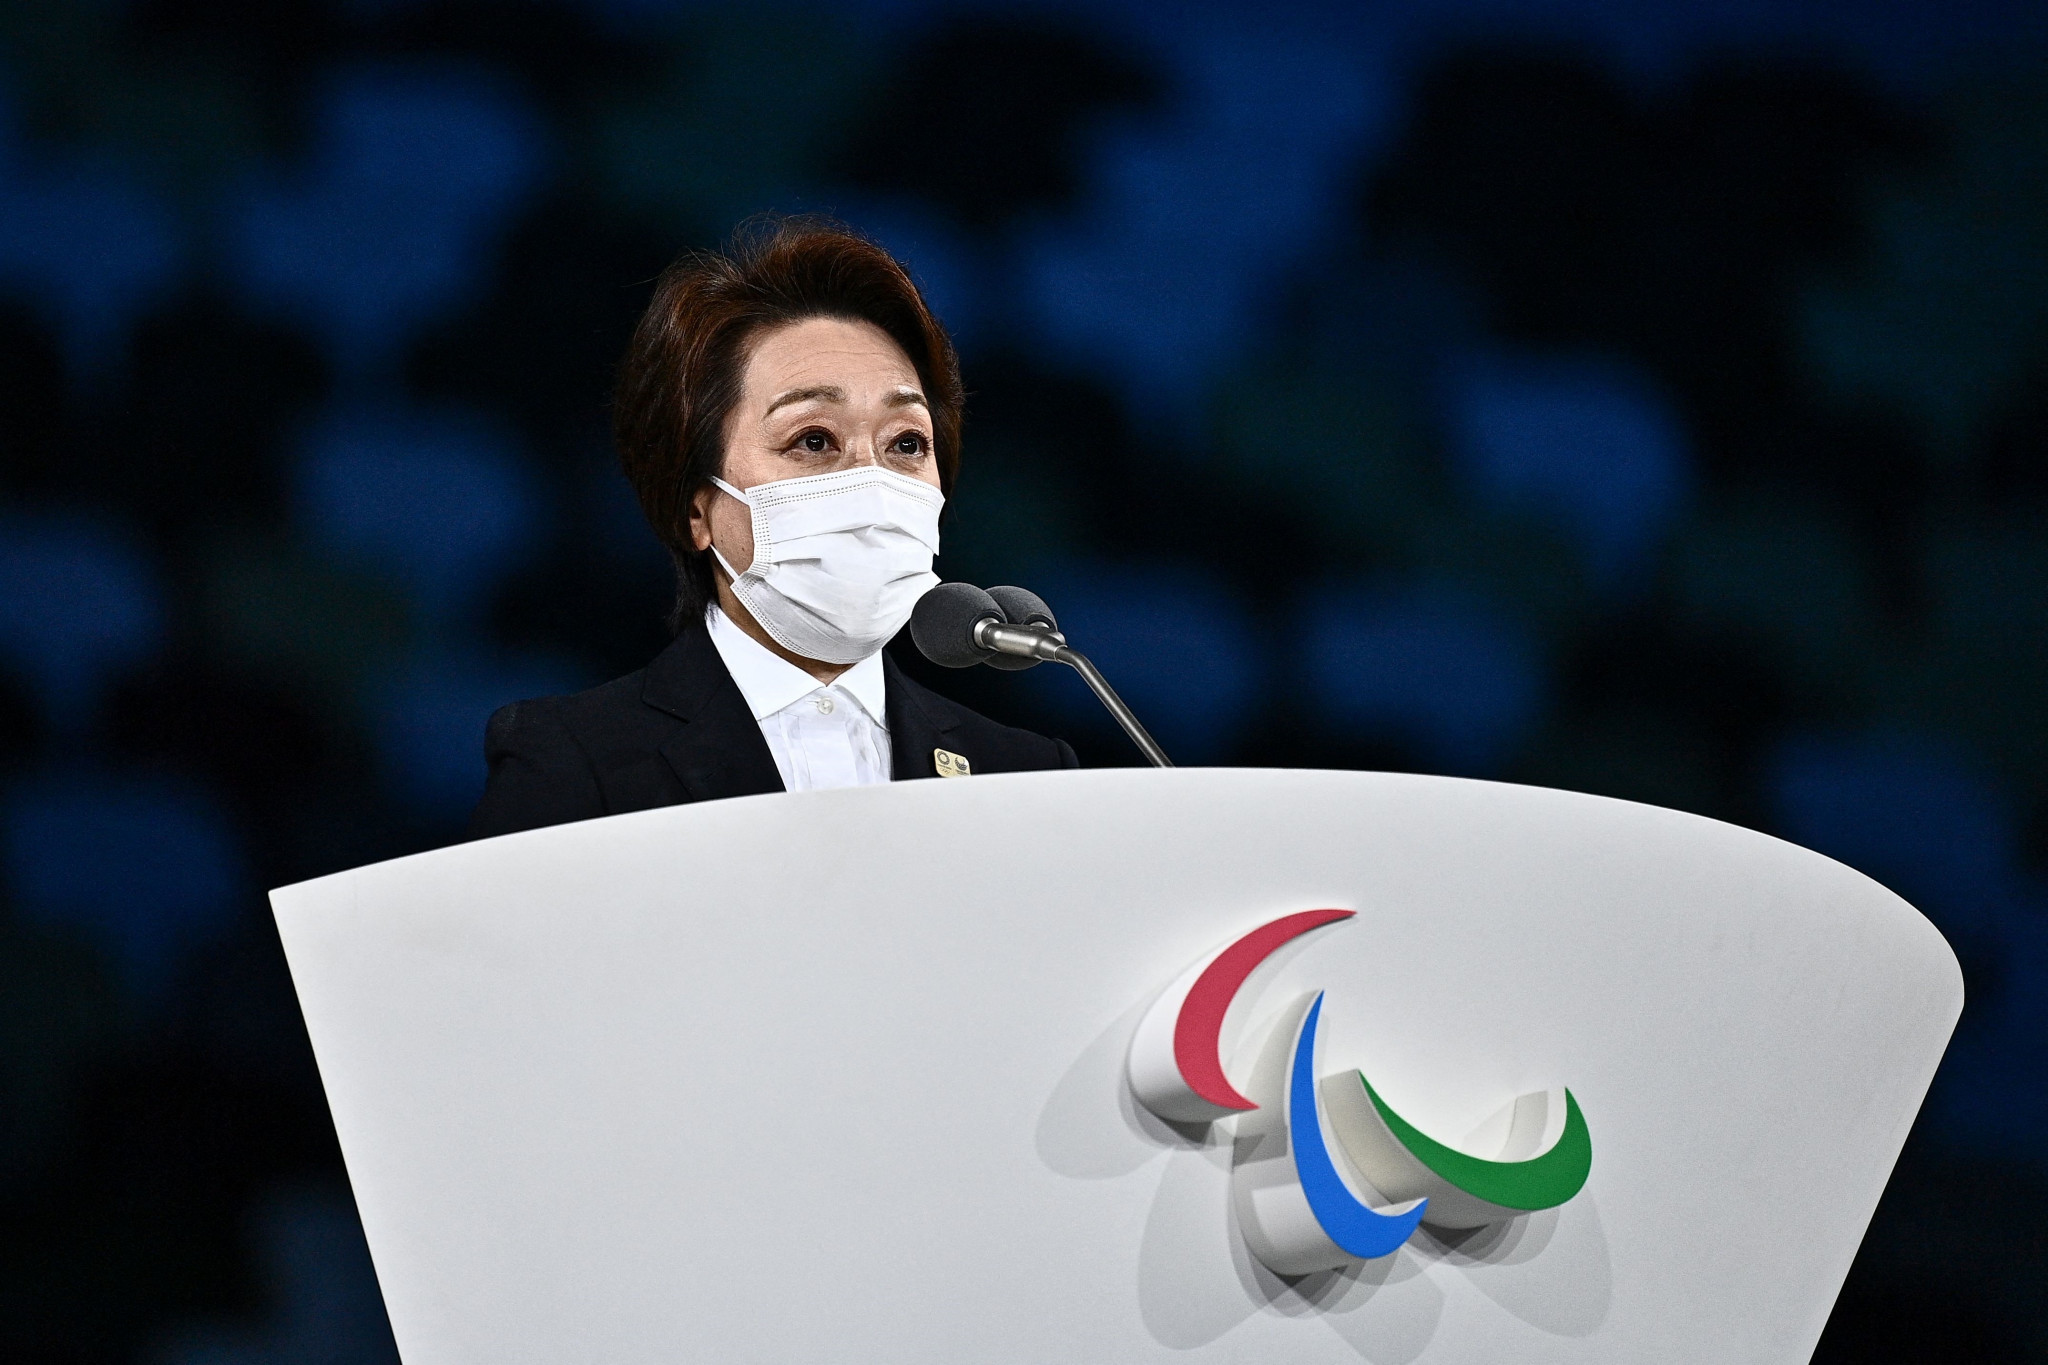 Tokyo 2020 President Seiko Hashimoto has backed  Sapporo to stage the 2030 Winter Olympics and Paralympics ©Getty Images